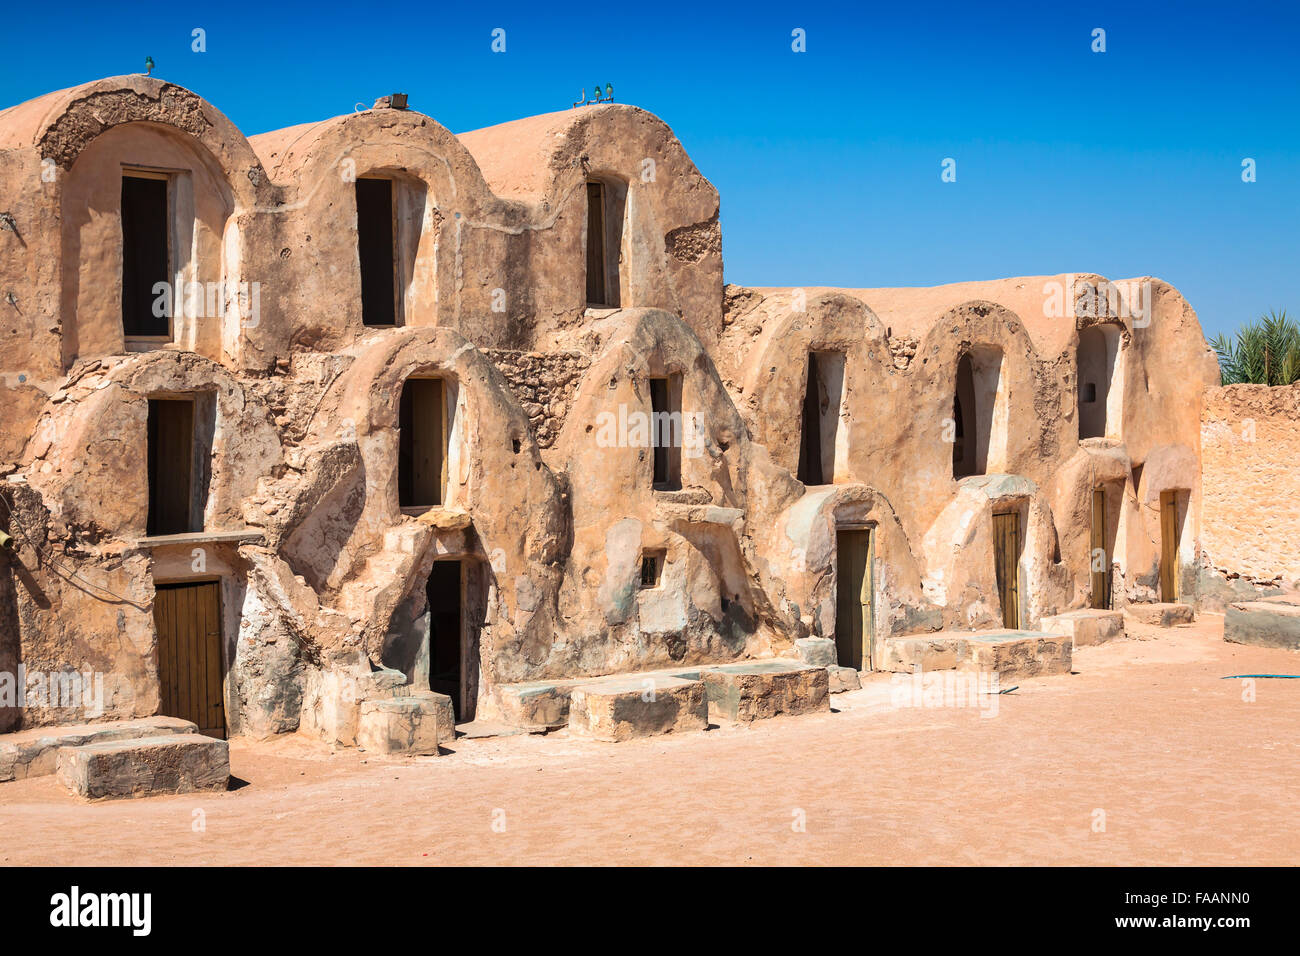 Tunisia. Medenine. Fragment of old Ksar located inside village. There were formerly fortified granaries (Ghorfas) - Stock Image